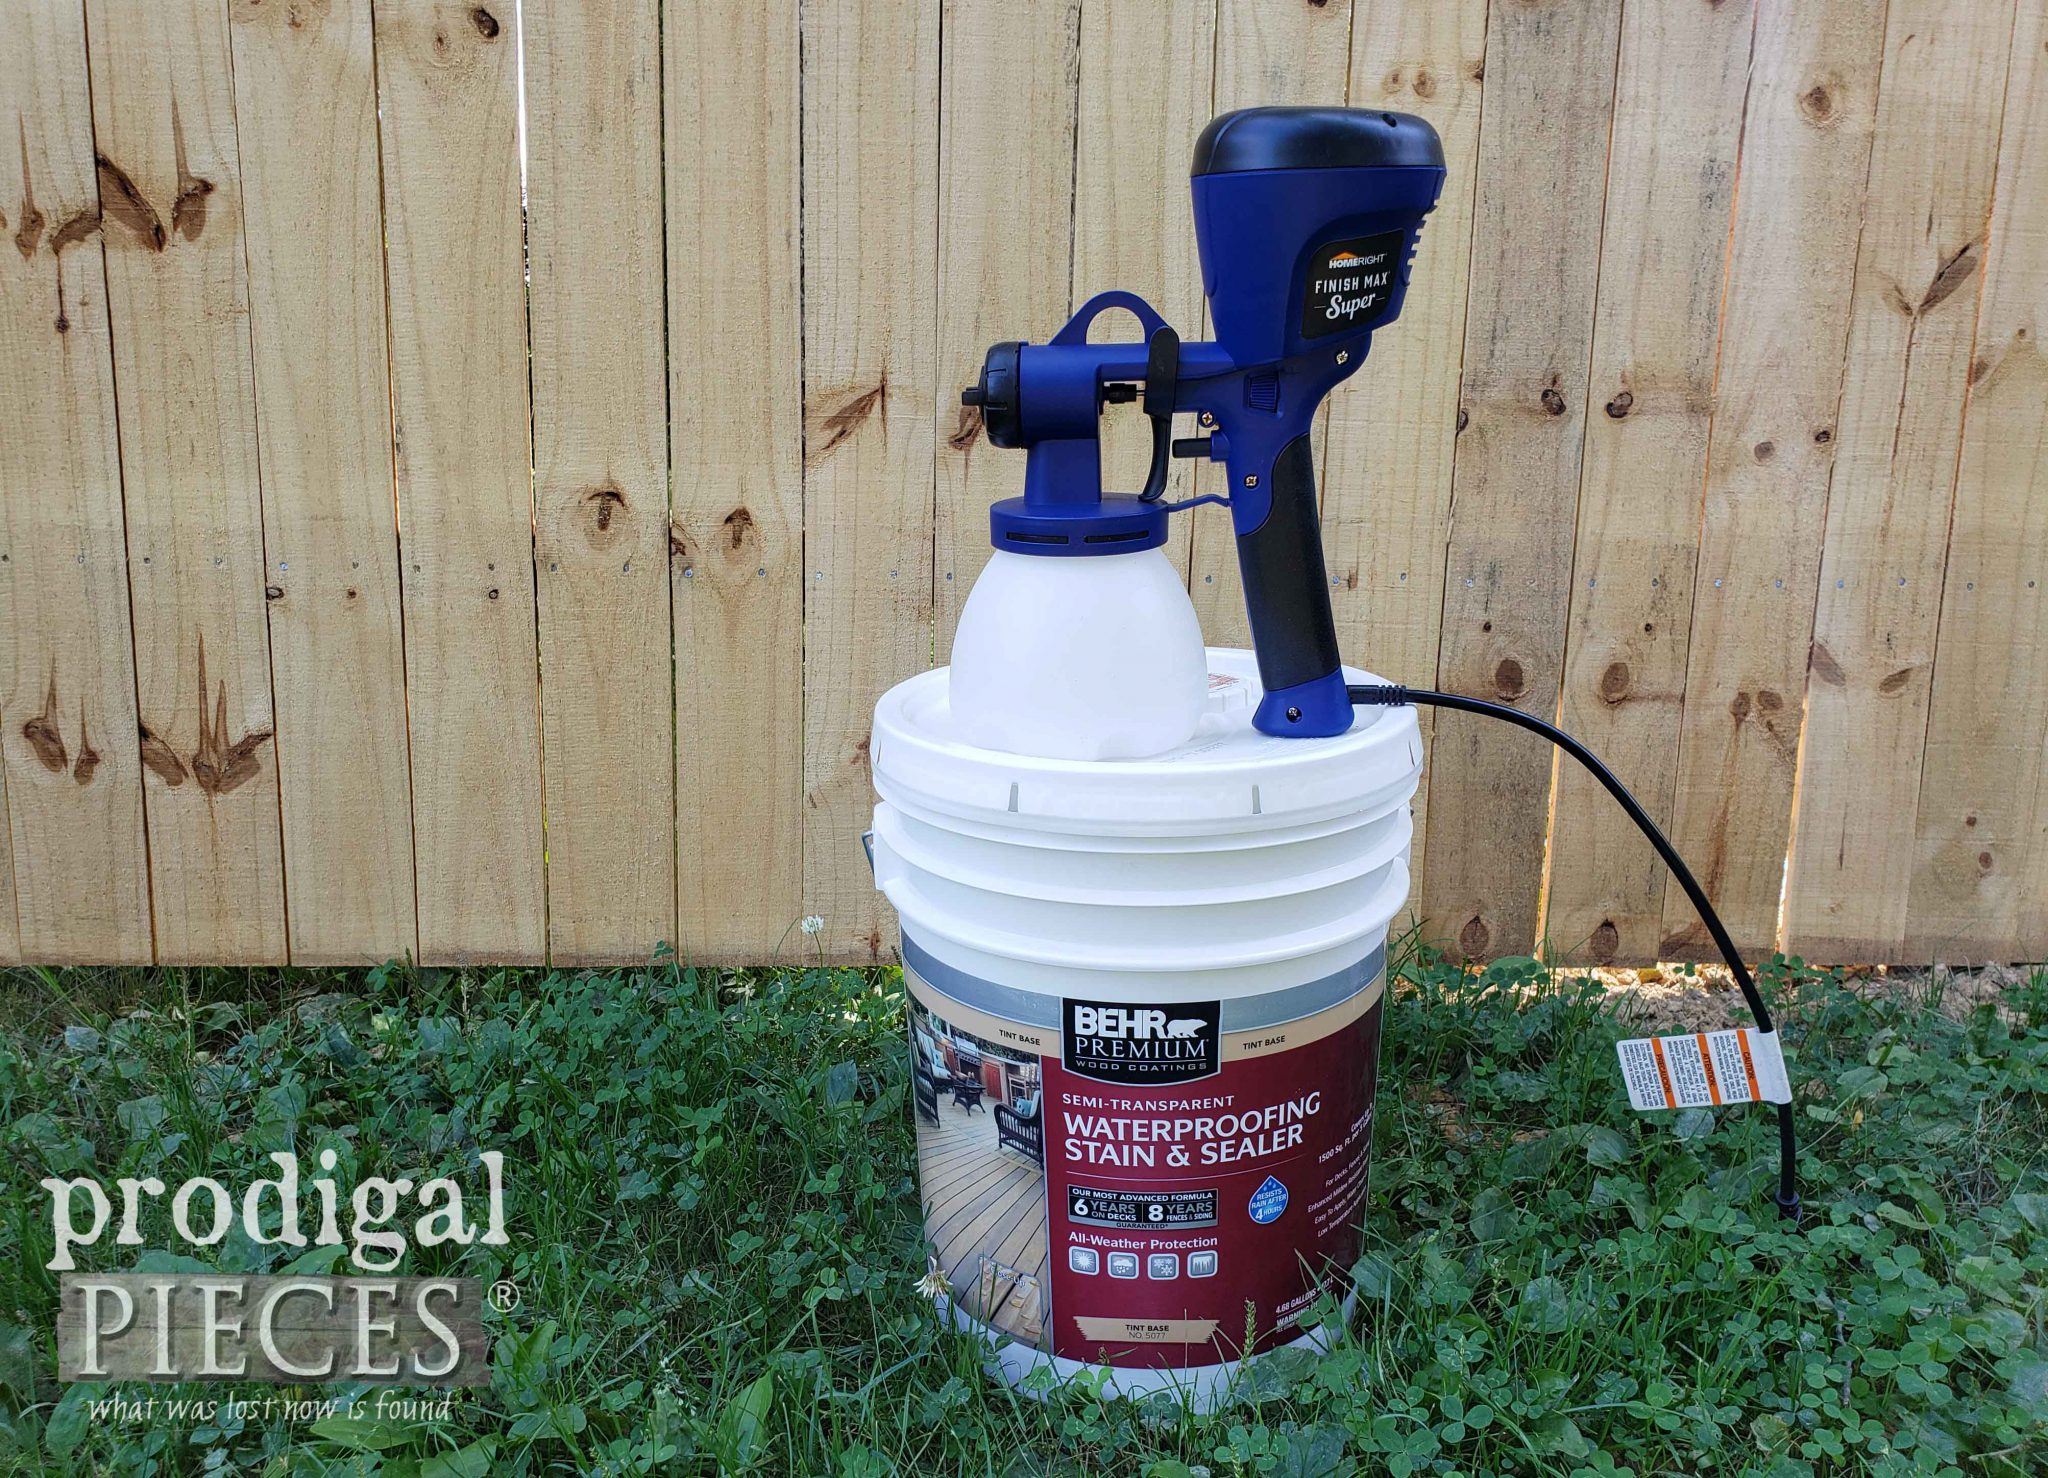 HomeRight Super Finish Max Sprayer for How to Stain a Fence Tutorial by Larissa of Prodigal Pieces | prodigalpieces.com #prodigalpieces #tools #homeimprovement #diy